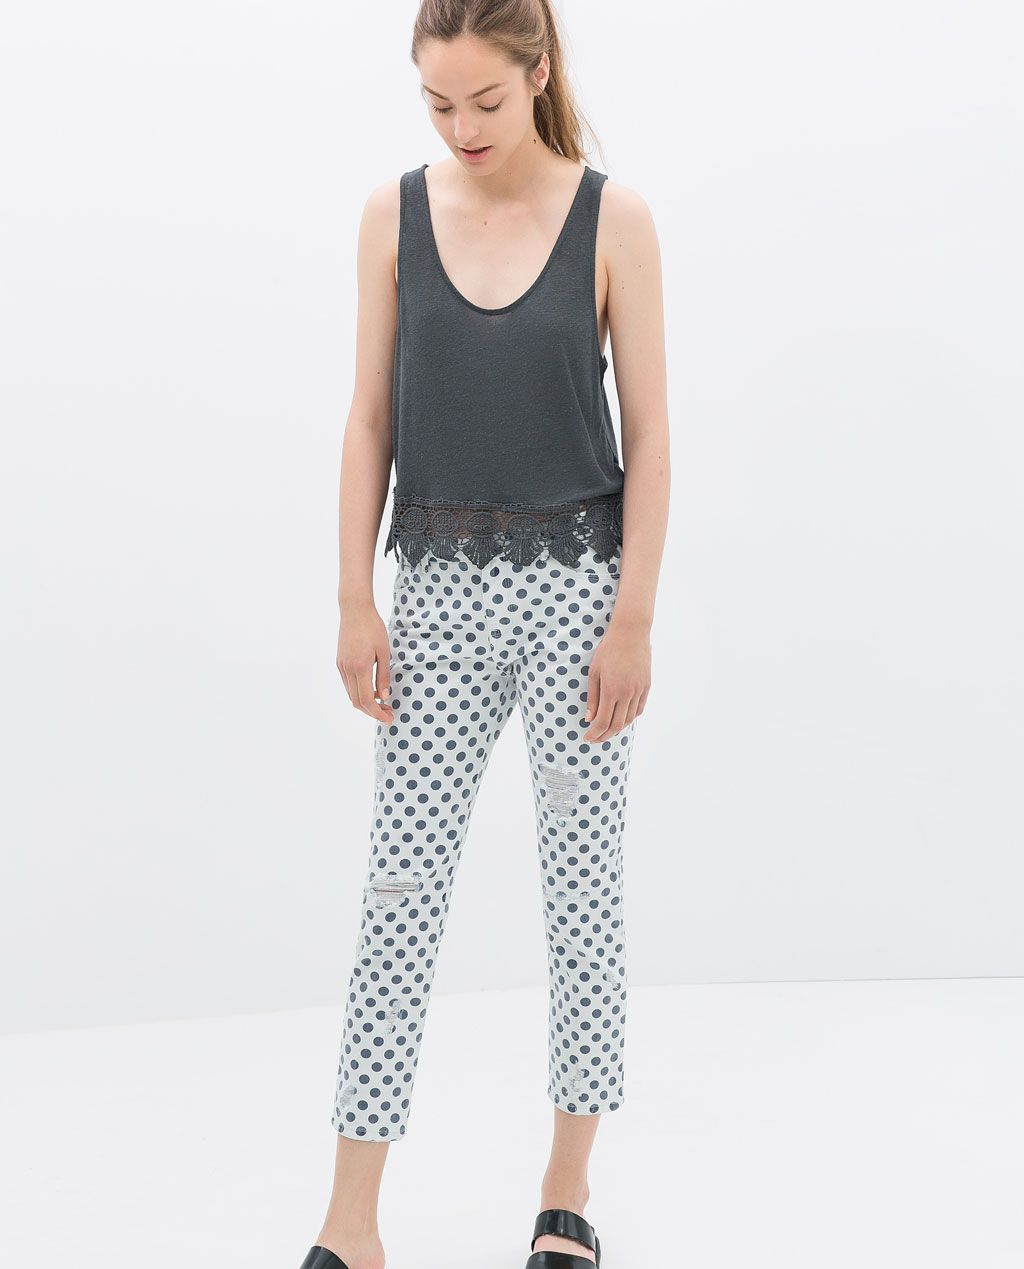 TOP MOTIF BRODÉ de Zara (also in white) 19,95 EUR